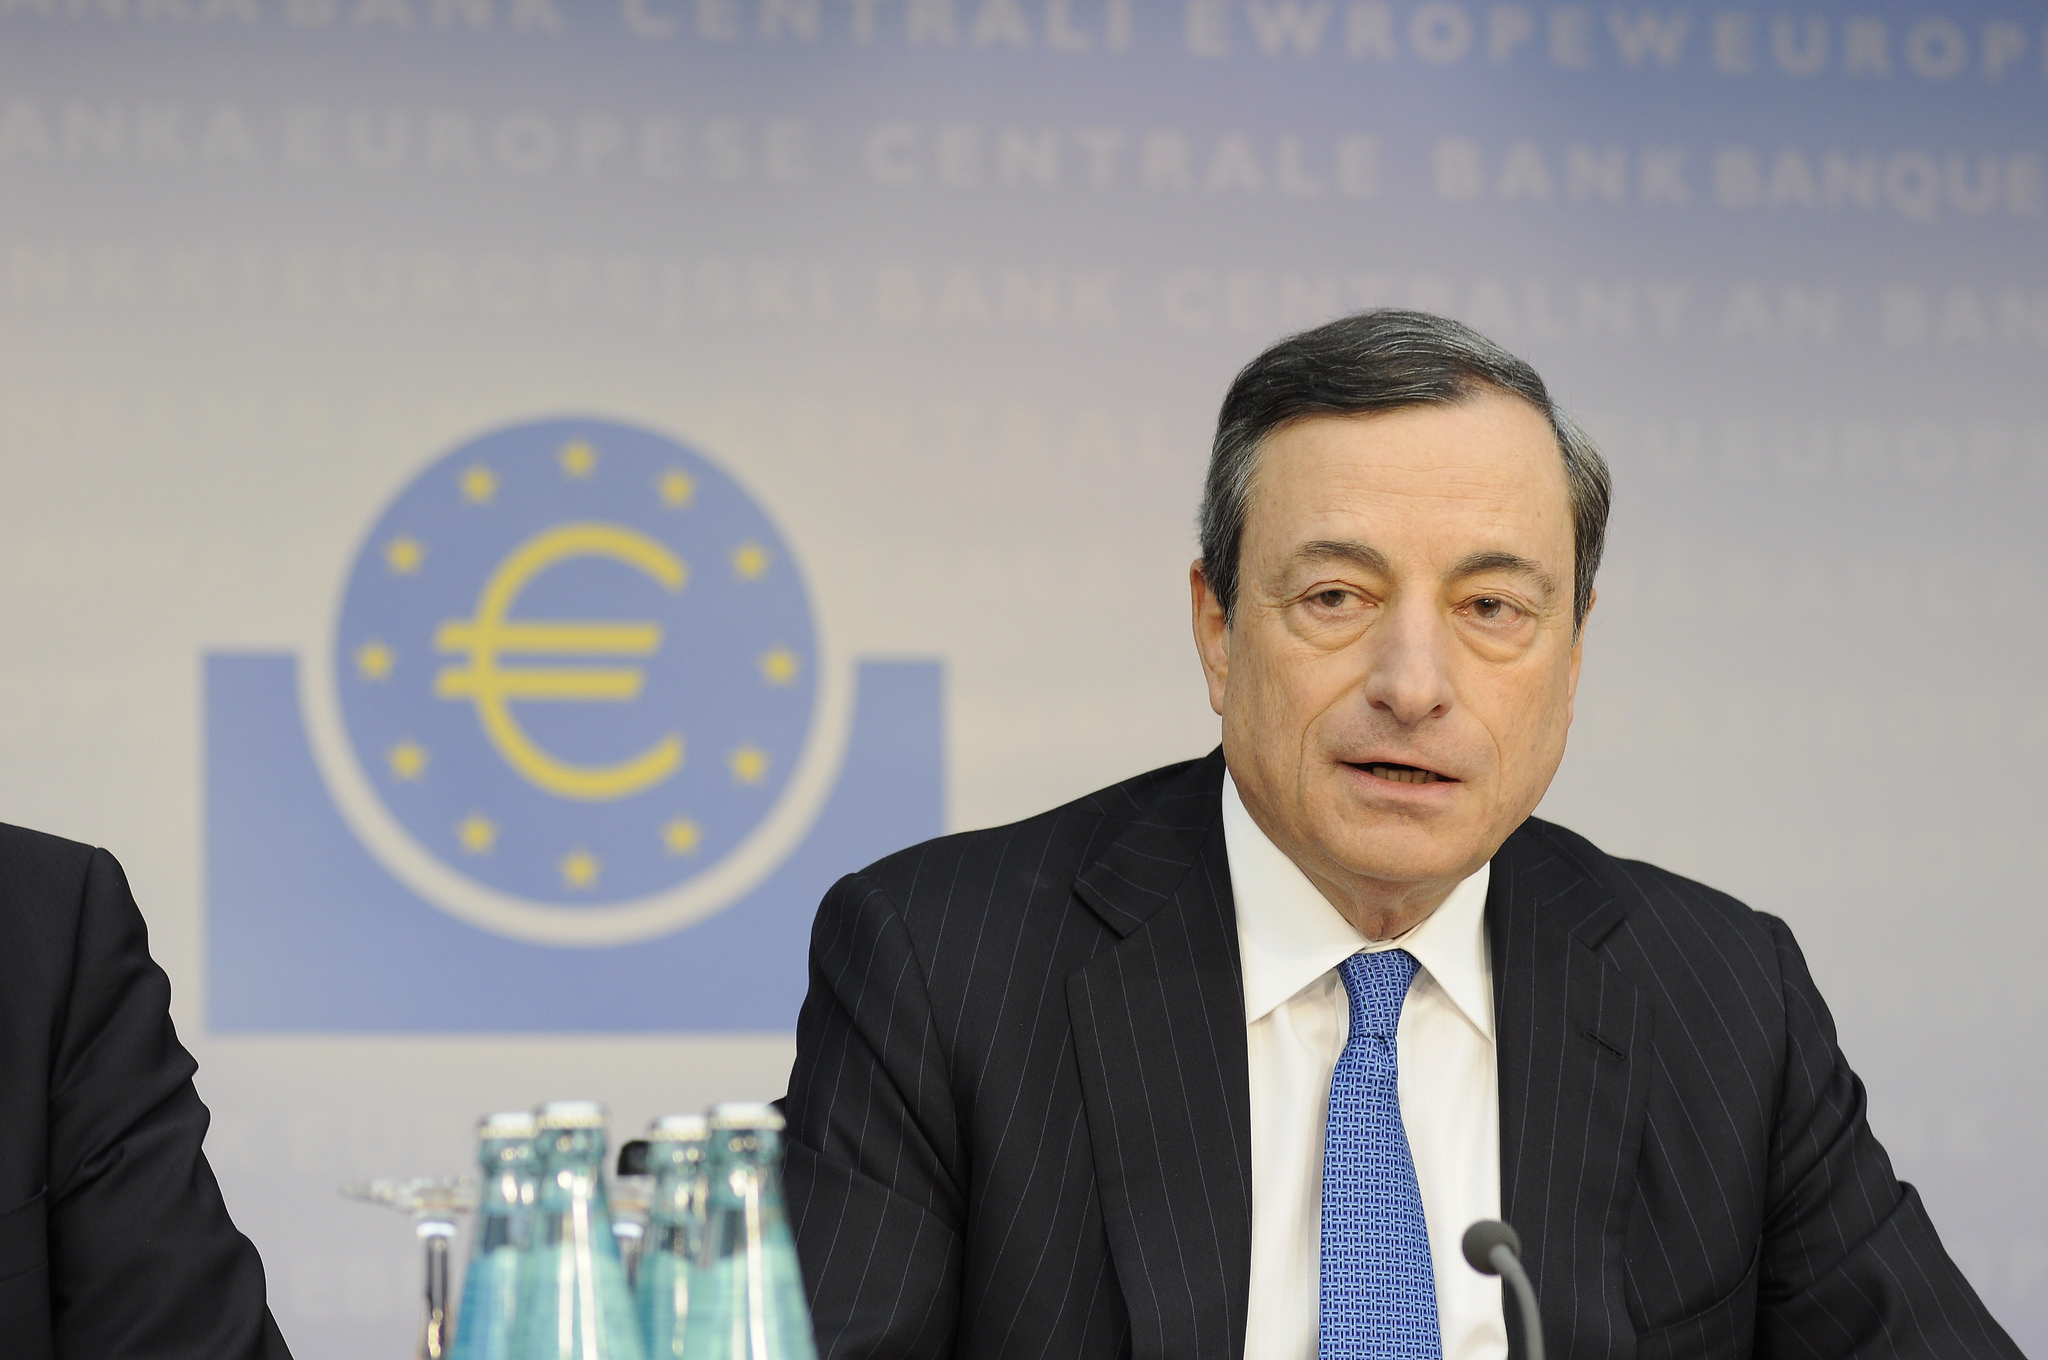 Photo credit: ECB European Central Bank (Flickr)